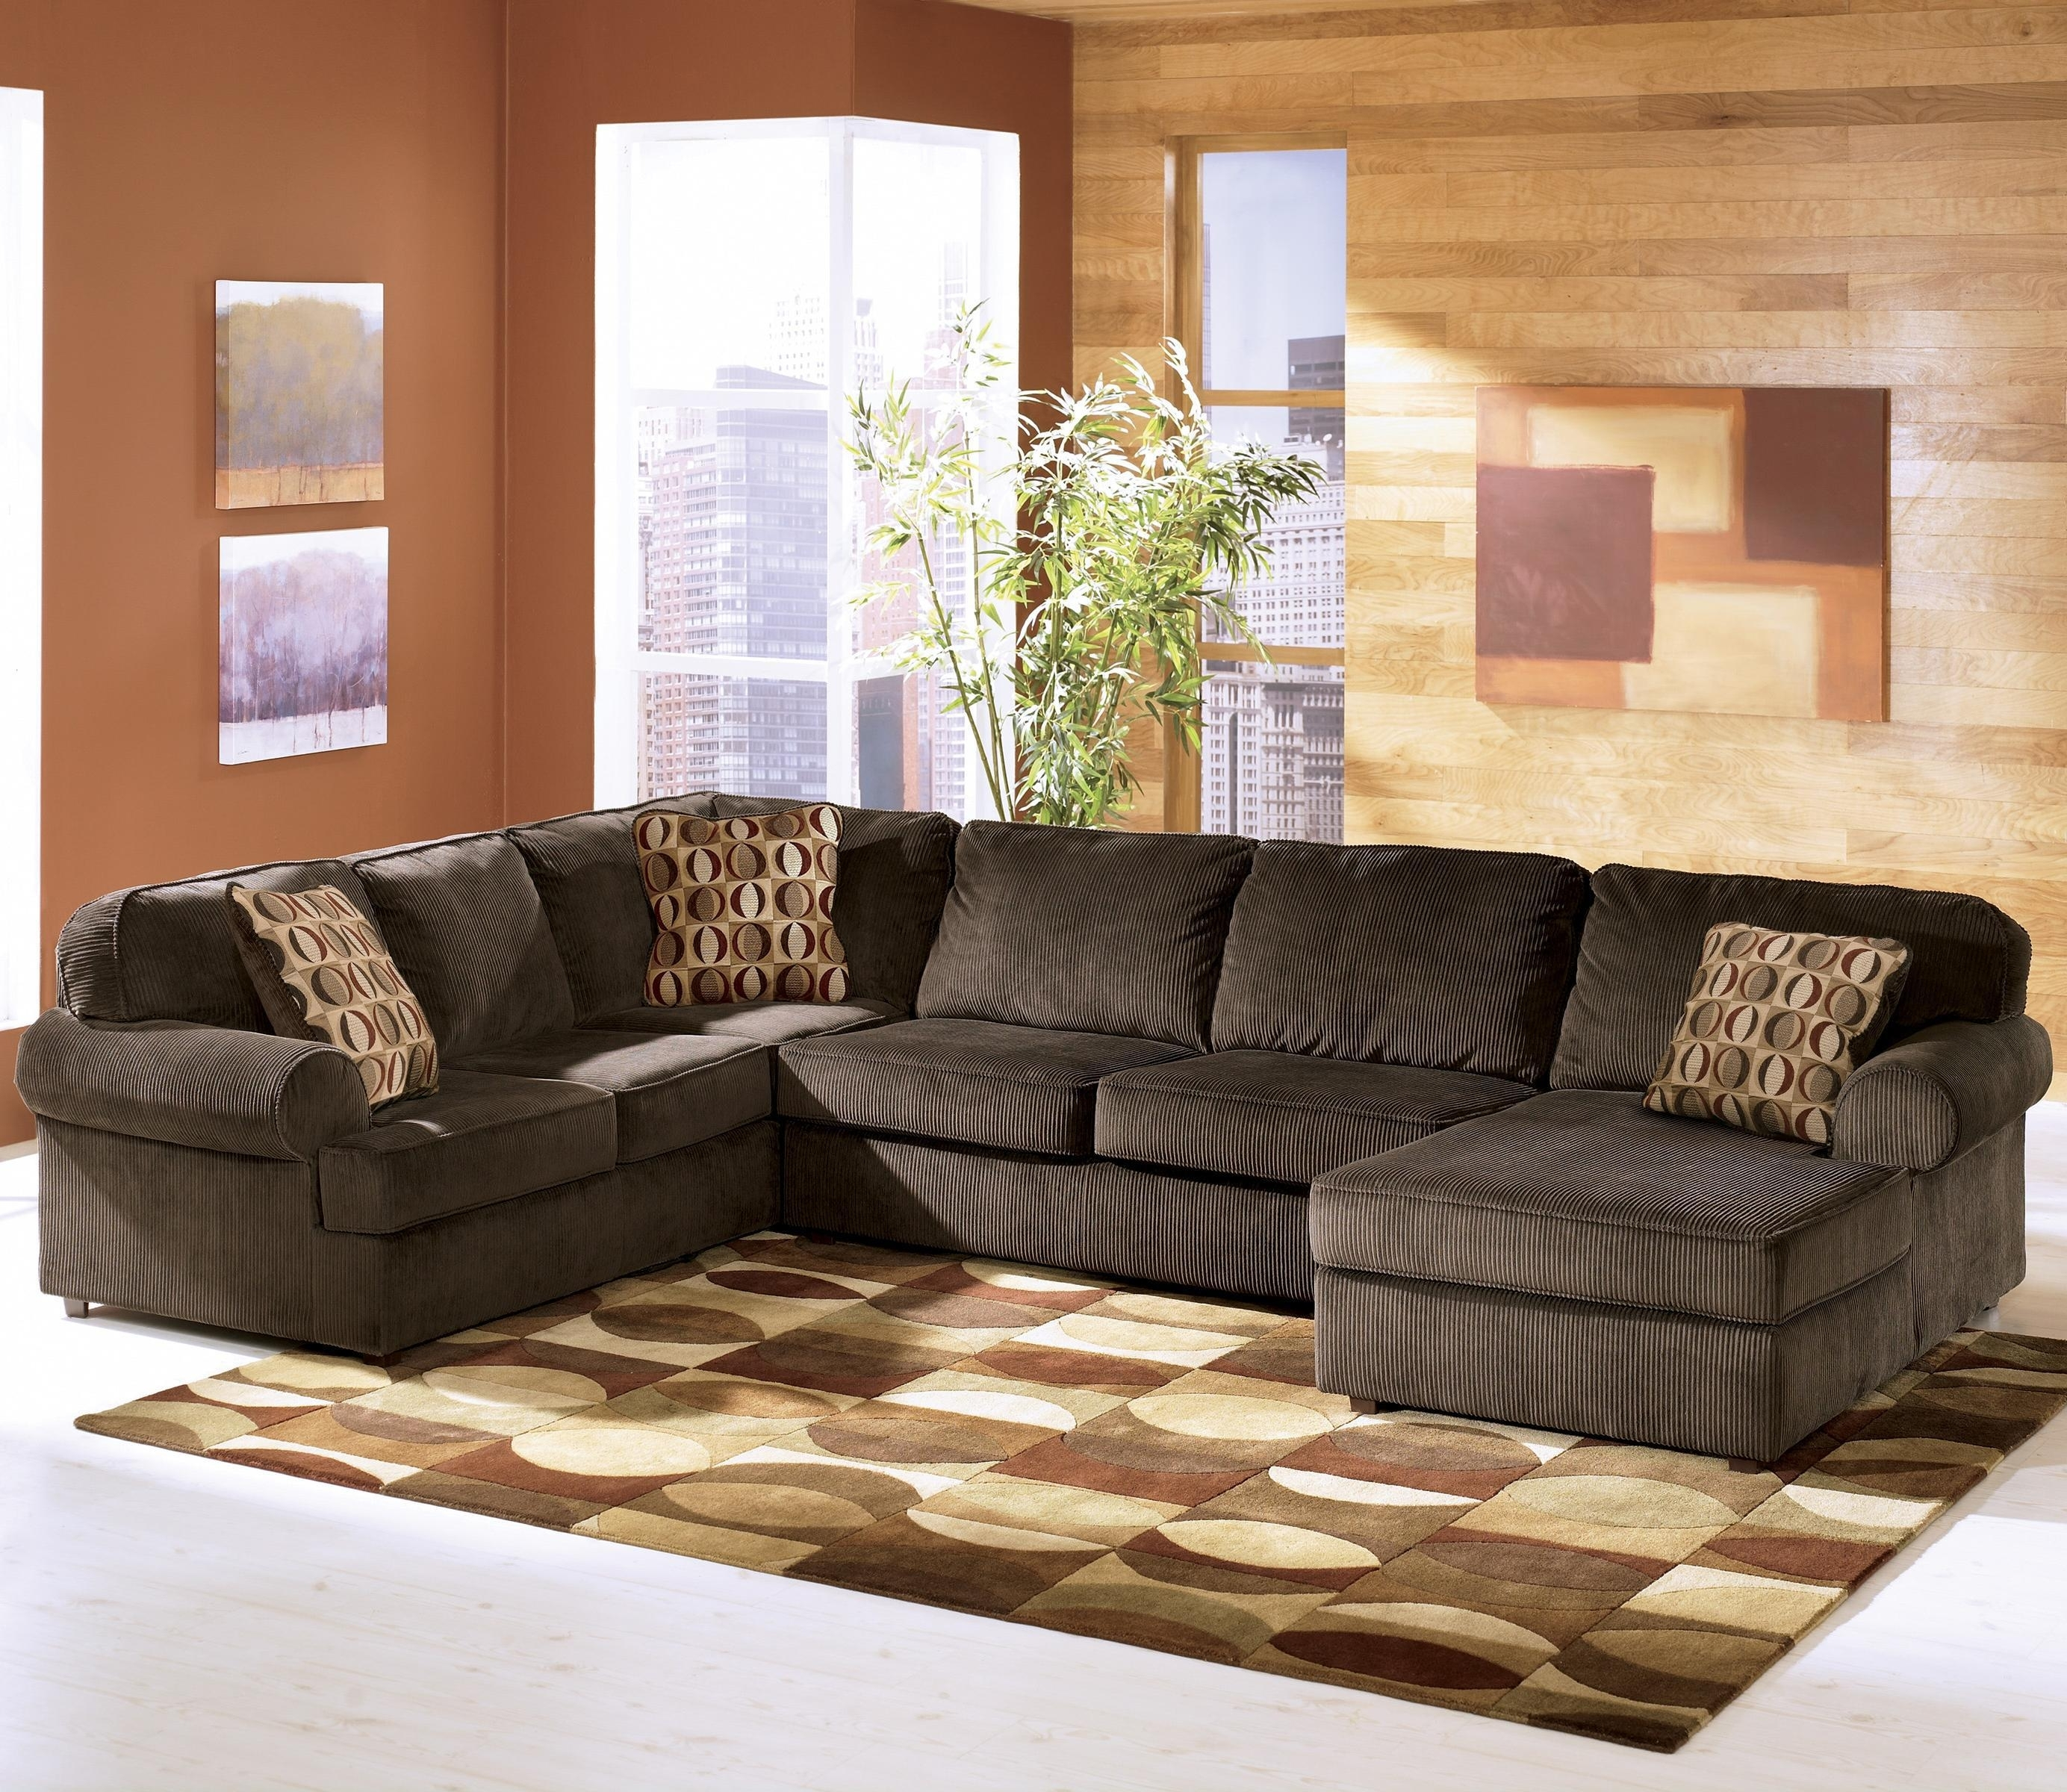 Most Recent Ashley Chaise Sofas Regarding Ashley Furniture Vista – Chocolate Casual 3 Piece Sectional With (View 8 of 15)